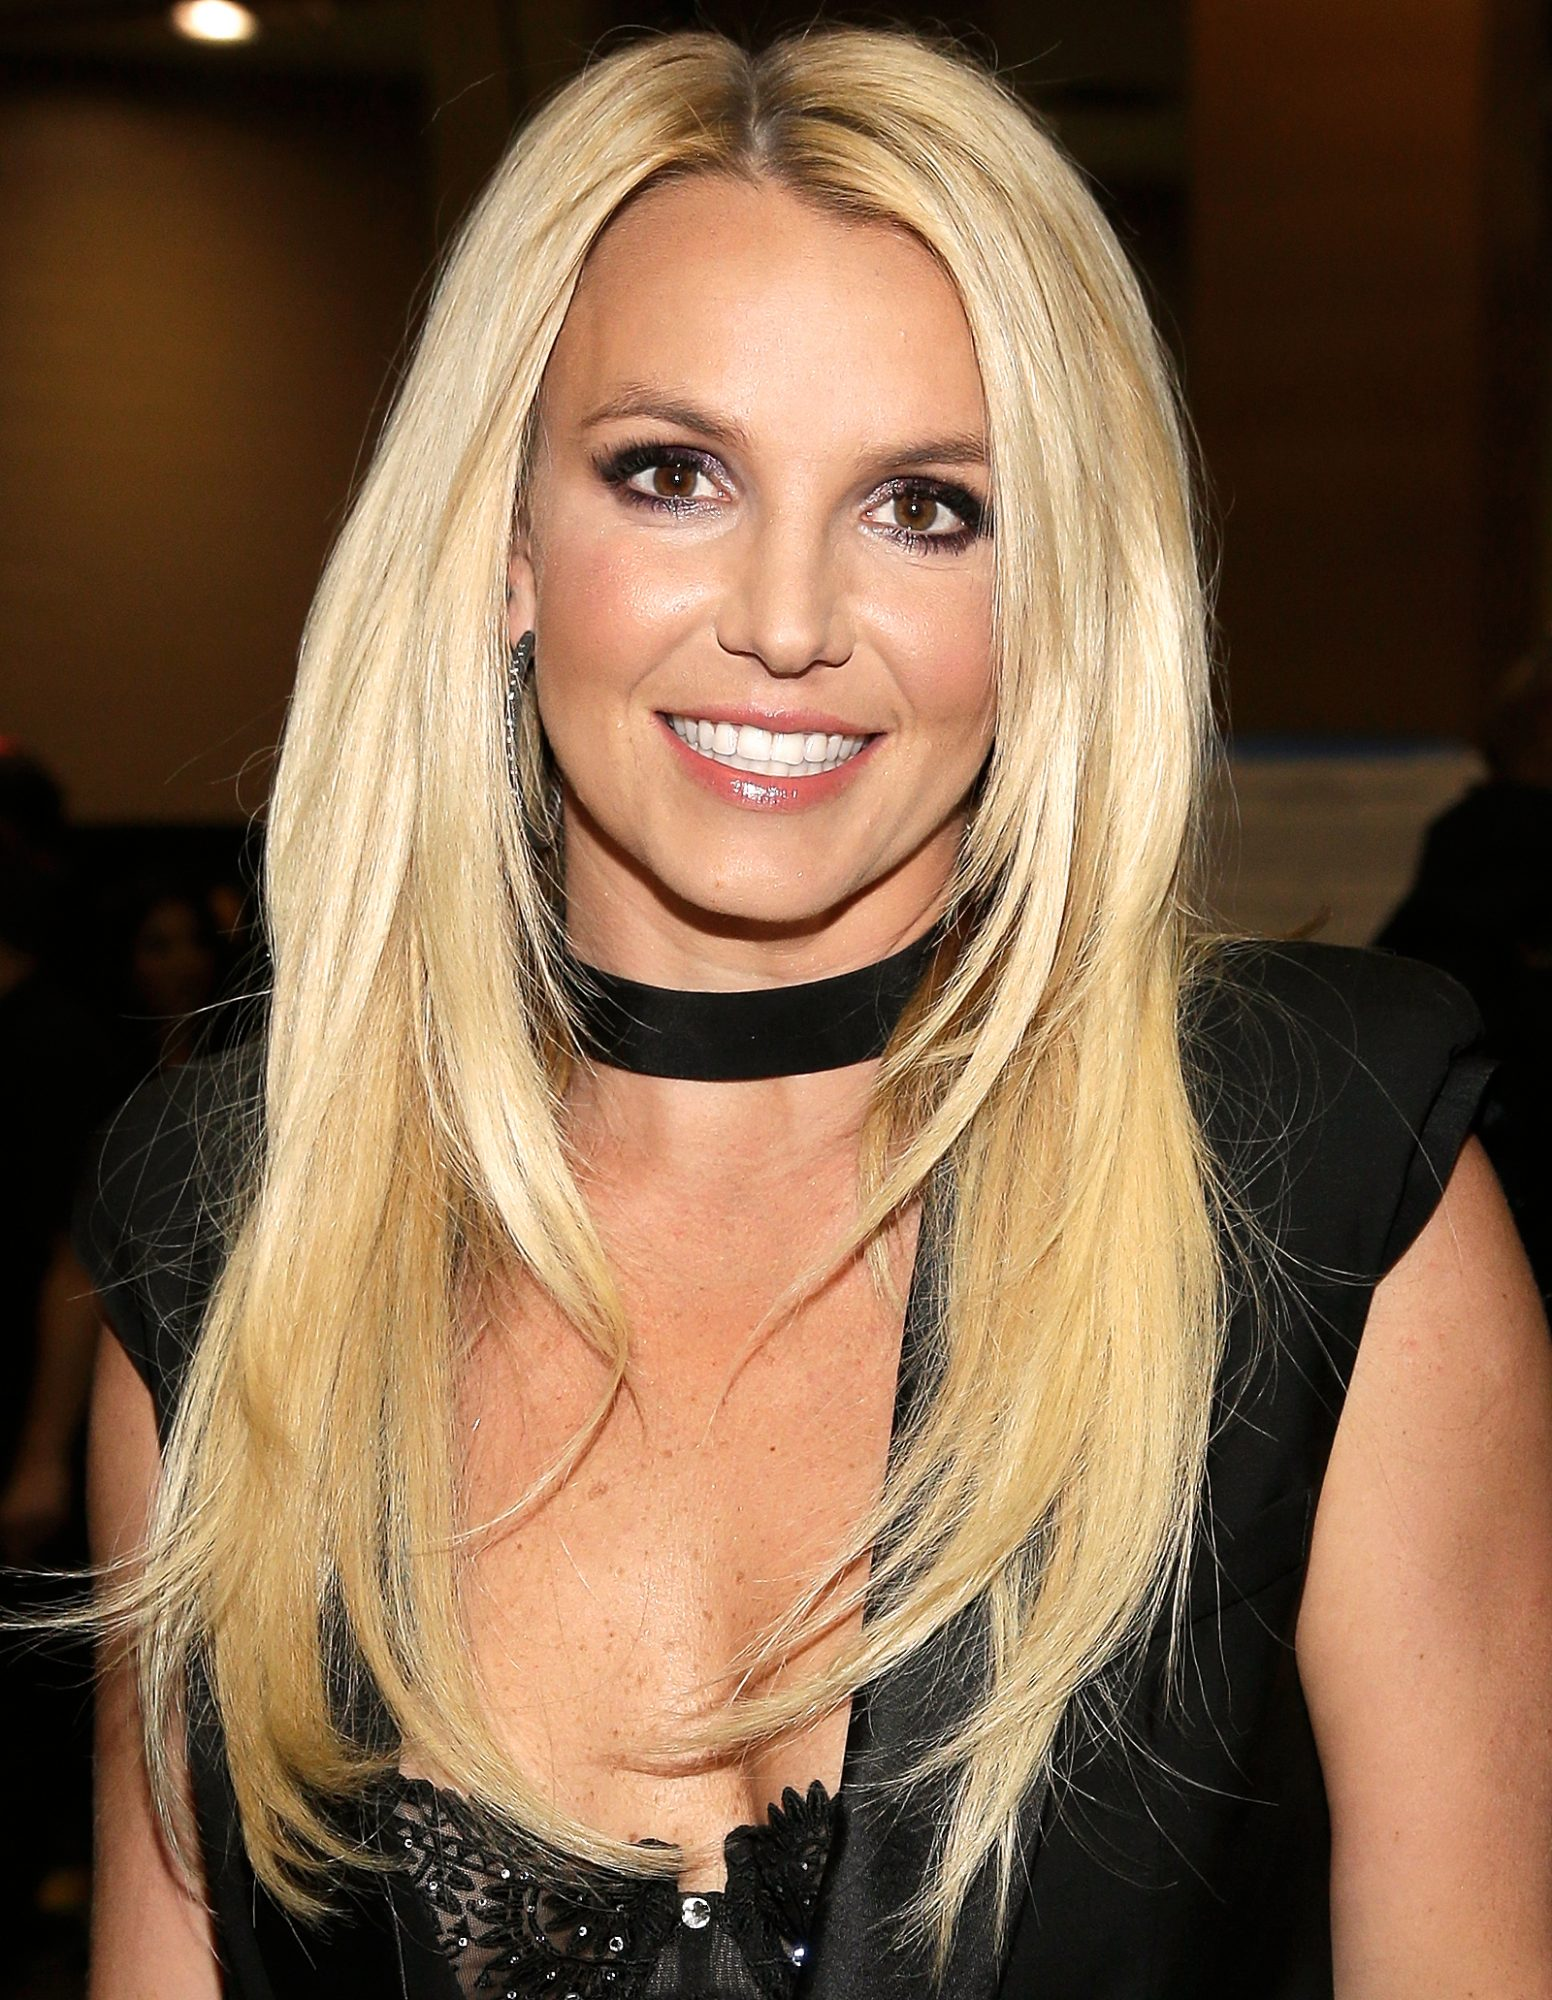 Britney Spears Headshot 6